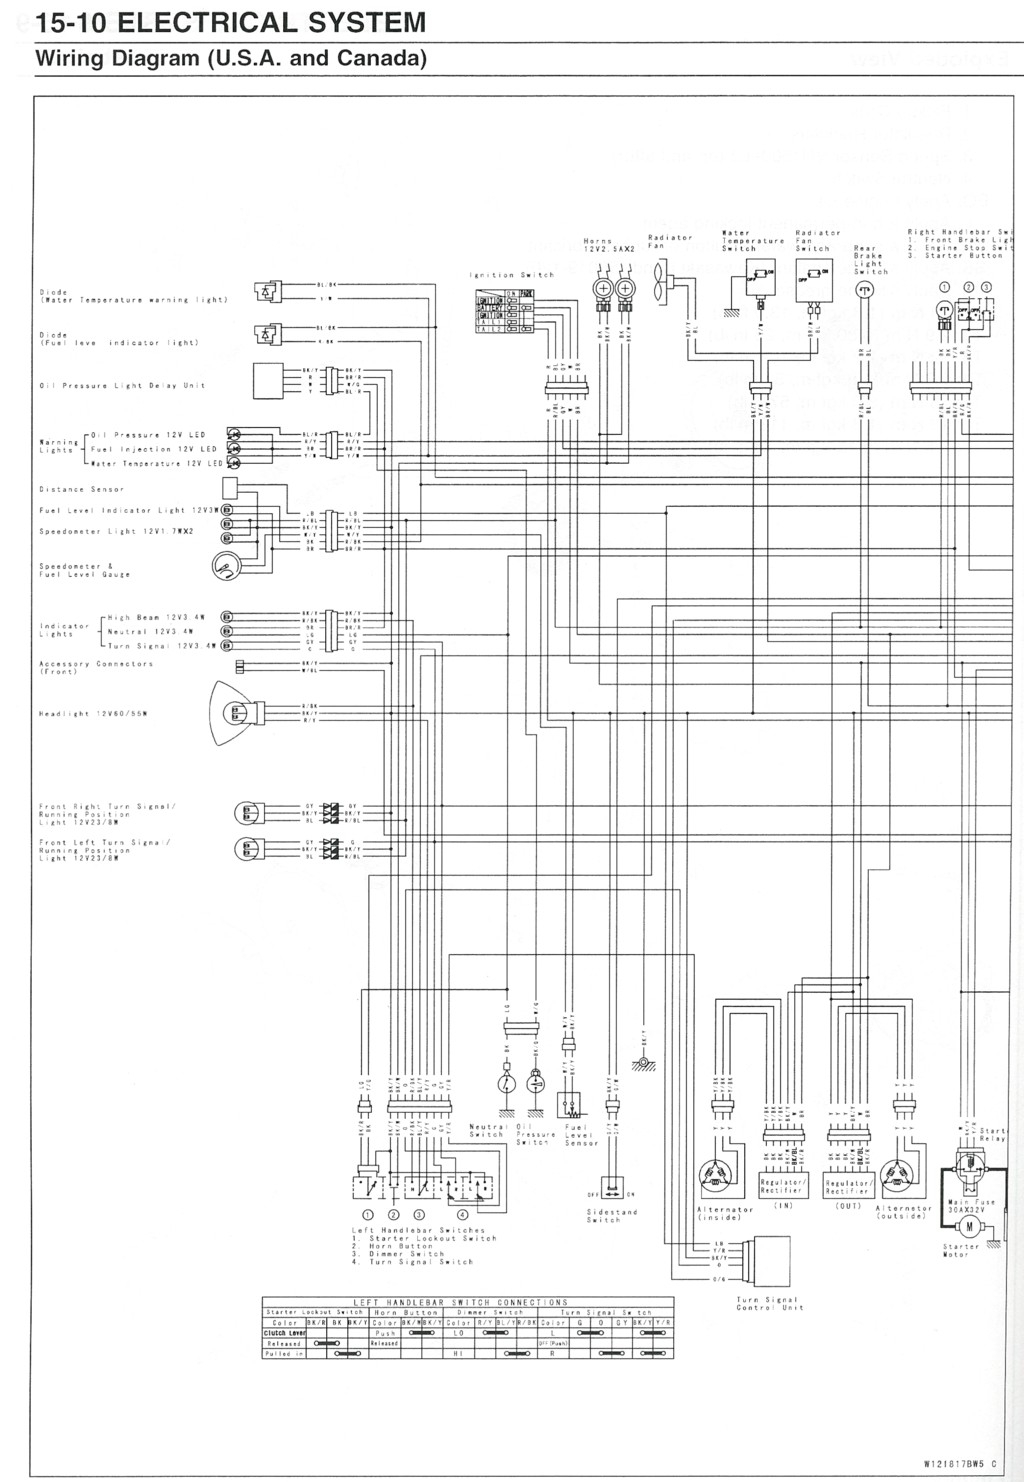 nomad_wiring_diagram_carbed_p1 vulcan wiring diagrams gadget's fixit page Kawasaki Vulcan 1500 Wiring Diagram at bakdesigns.co